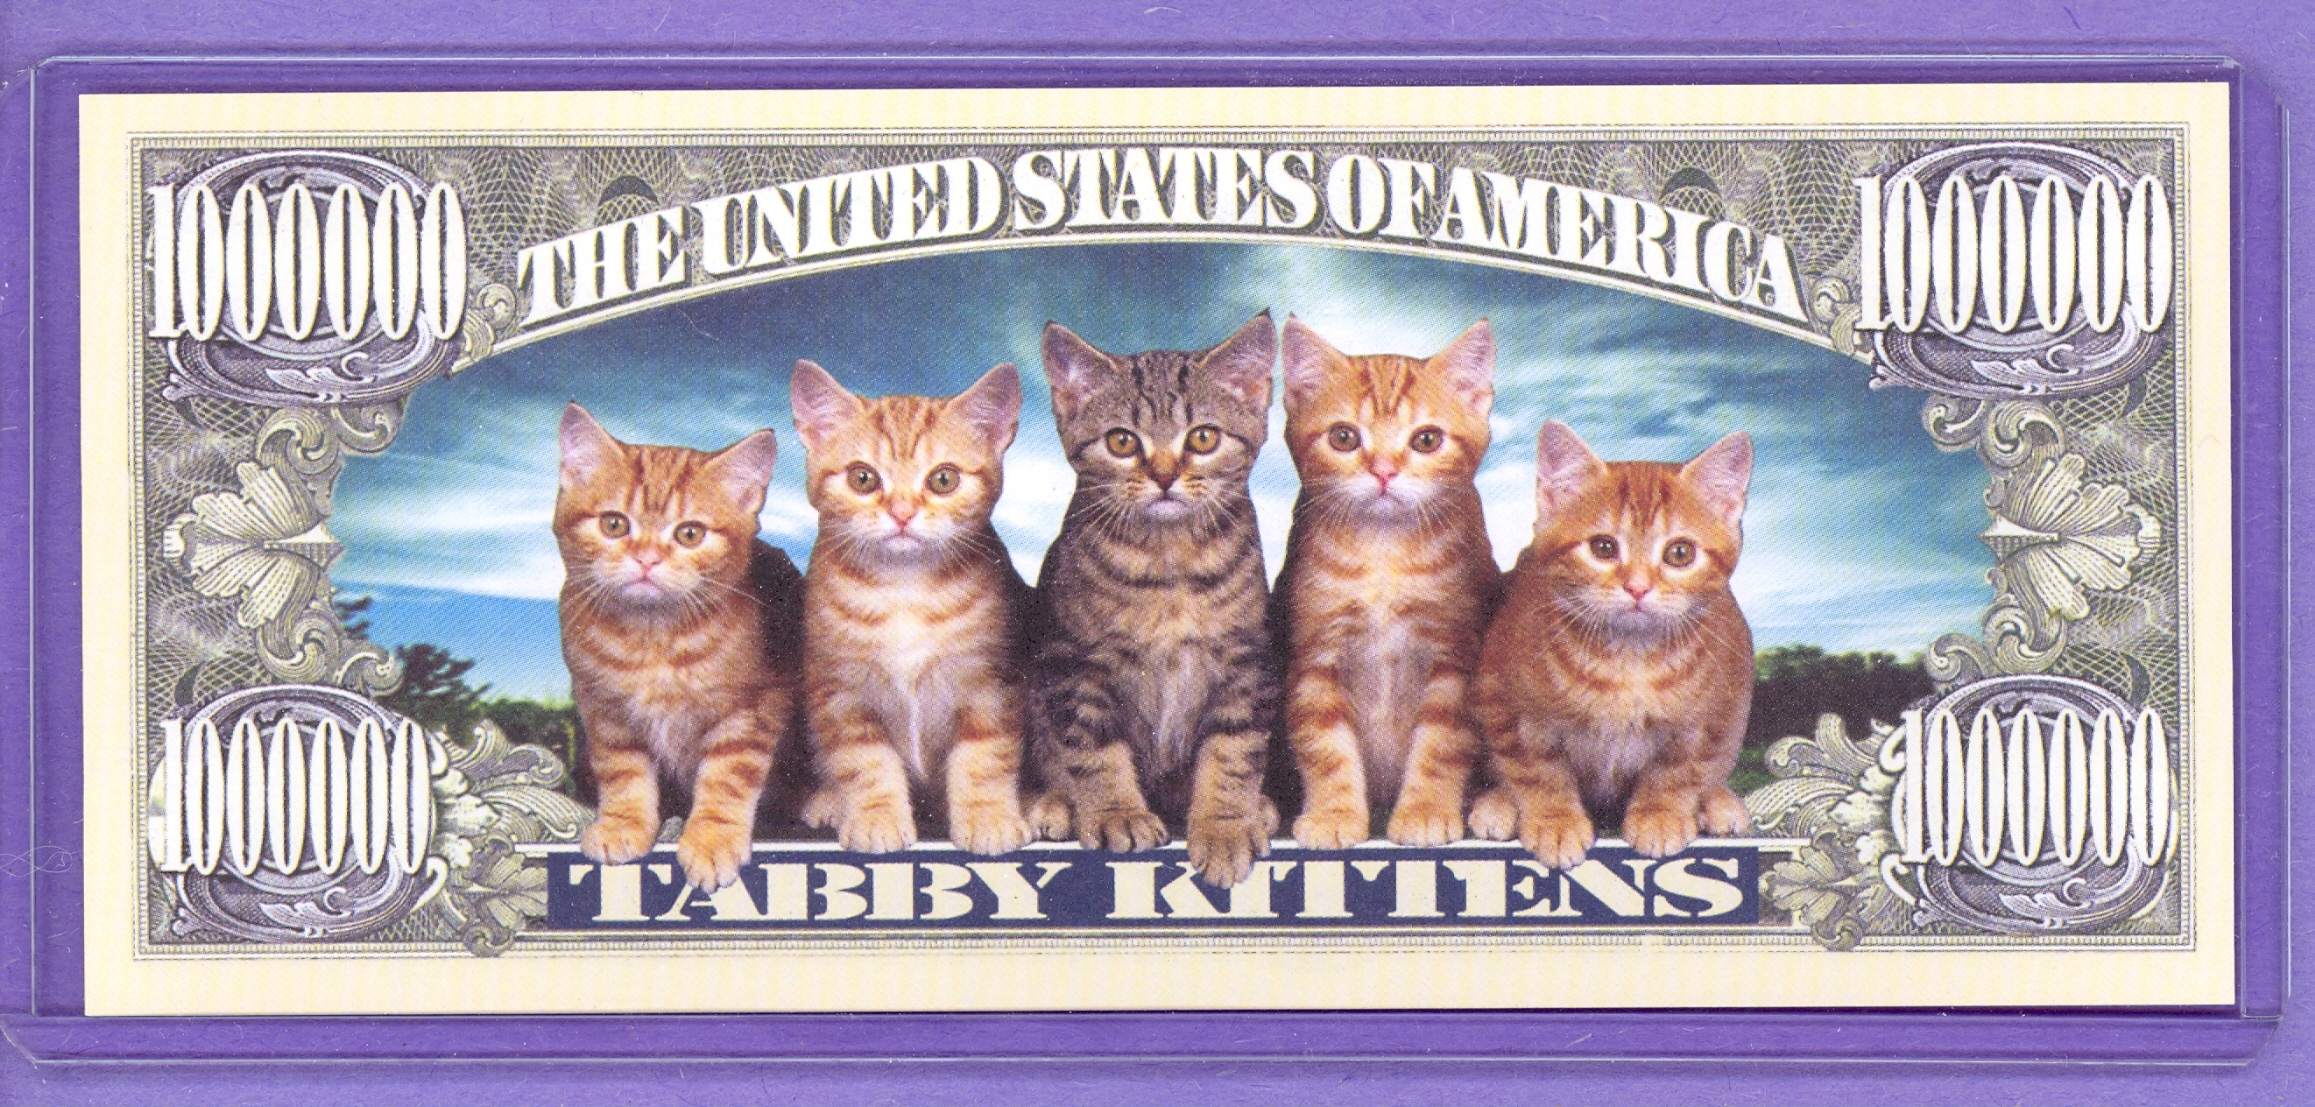 Tabby Kittens $1,000,000 Novelty Note